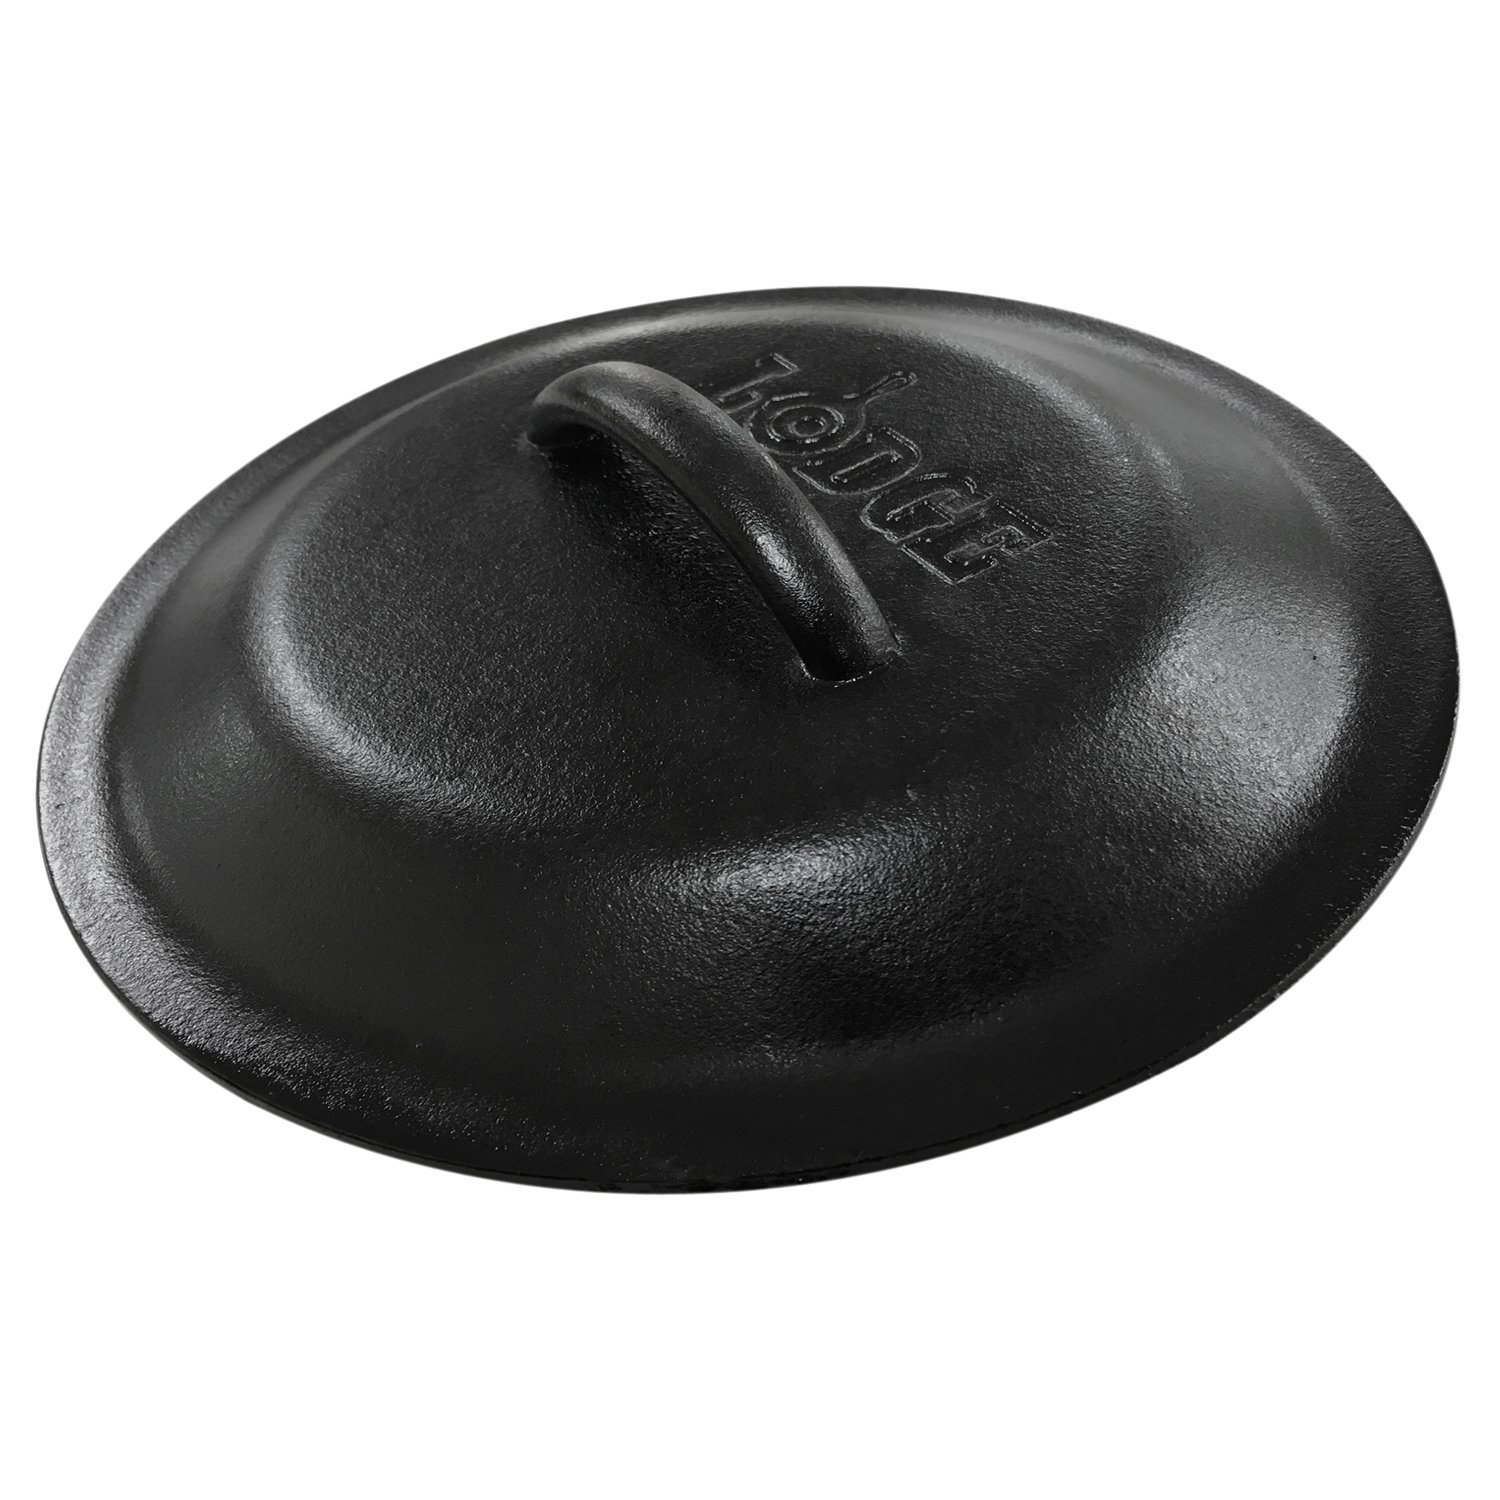 Lodge L8IC3 10-1/4-Inch Logic Cast-Iron Lid